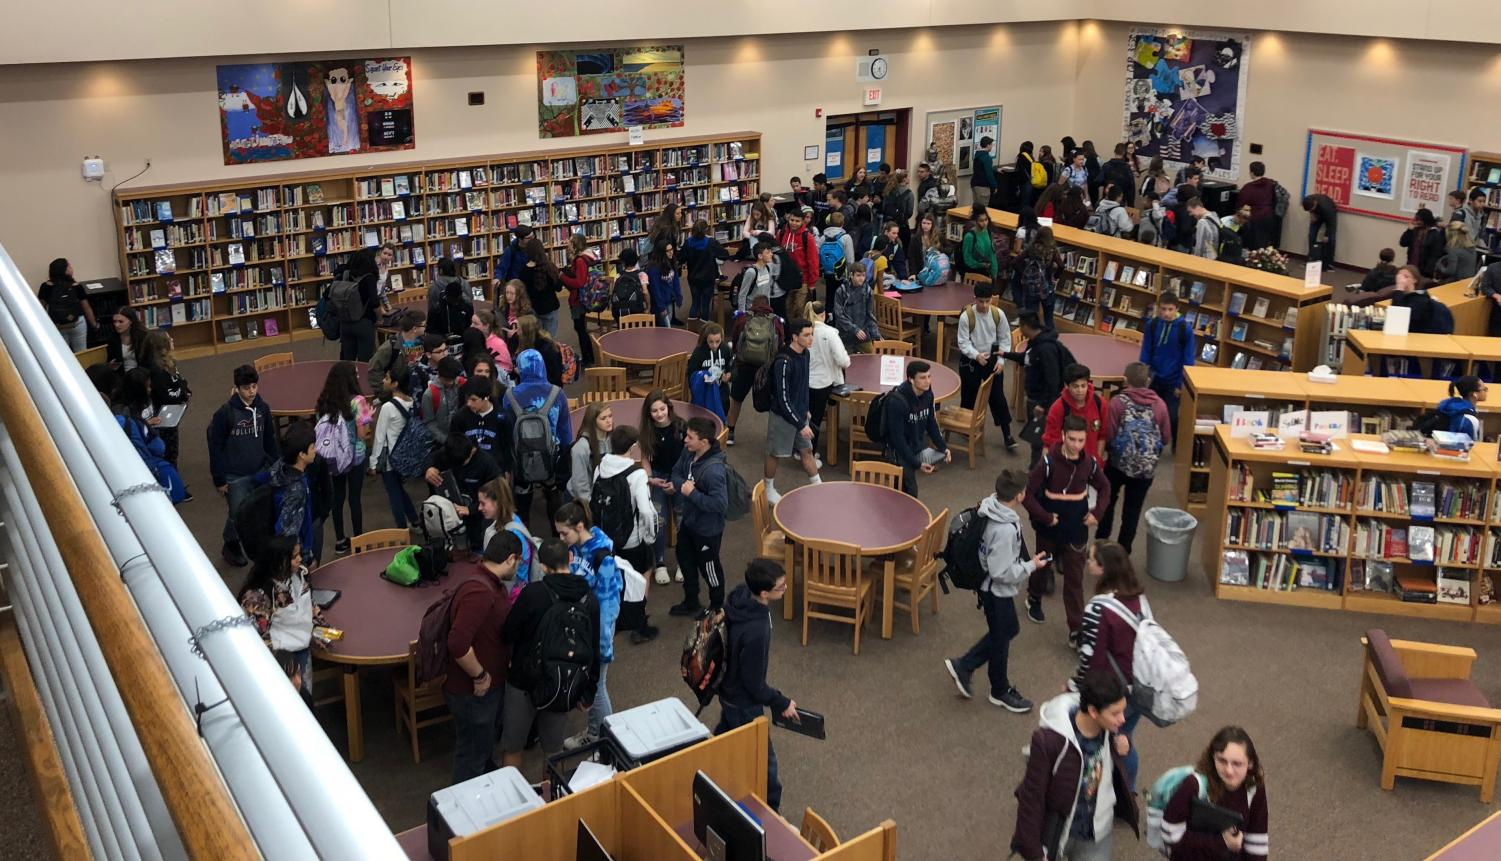 At the beginning of each school day, students can be seen picking up their respective Chromebooks. Once the school day is over, students put their laptops back in the library where they are stored, ready to be used again for the next day. (Photo by Aidan McHenry)